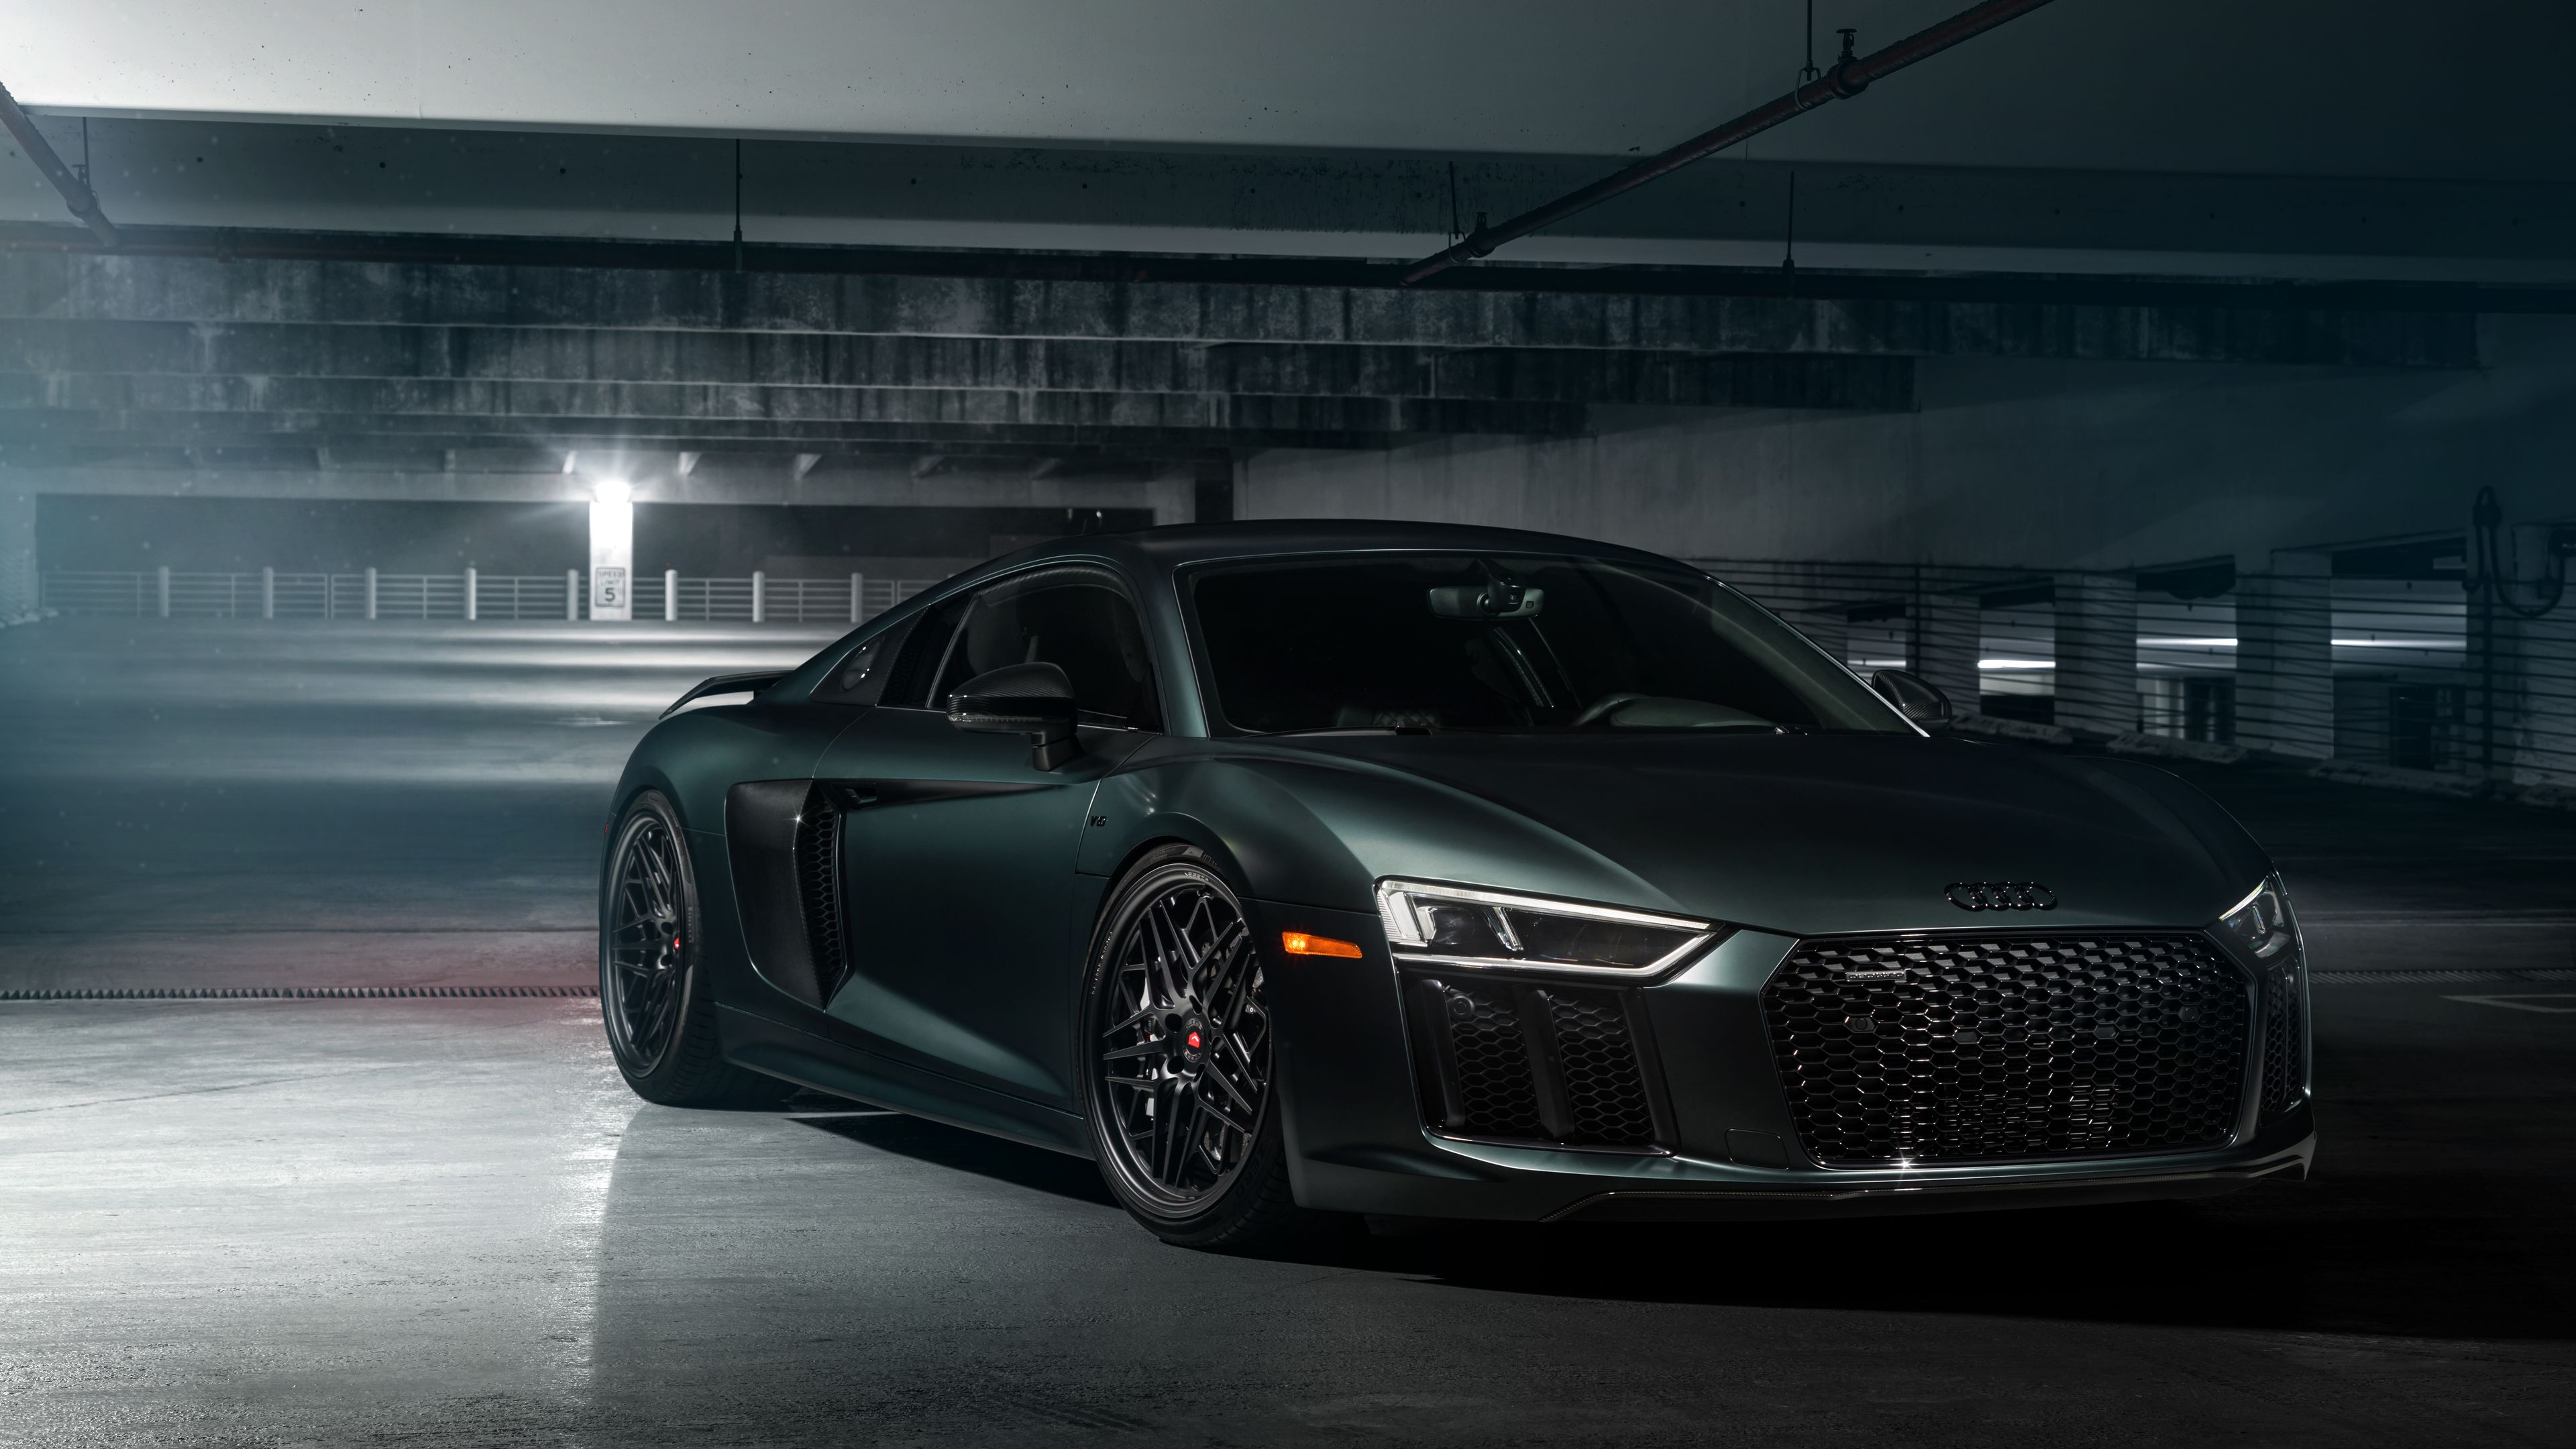 2018 Audi R8 V10 Front Hd Wallpapers Cars Wallpapers Audi Wallpapers Audi R8 Wallpapers 8k Wallpapers 5k Wallpape Audi R8 Wallpaper Audi R8 Car Wallpapers